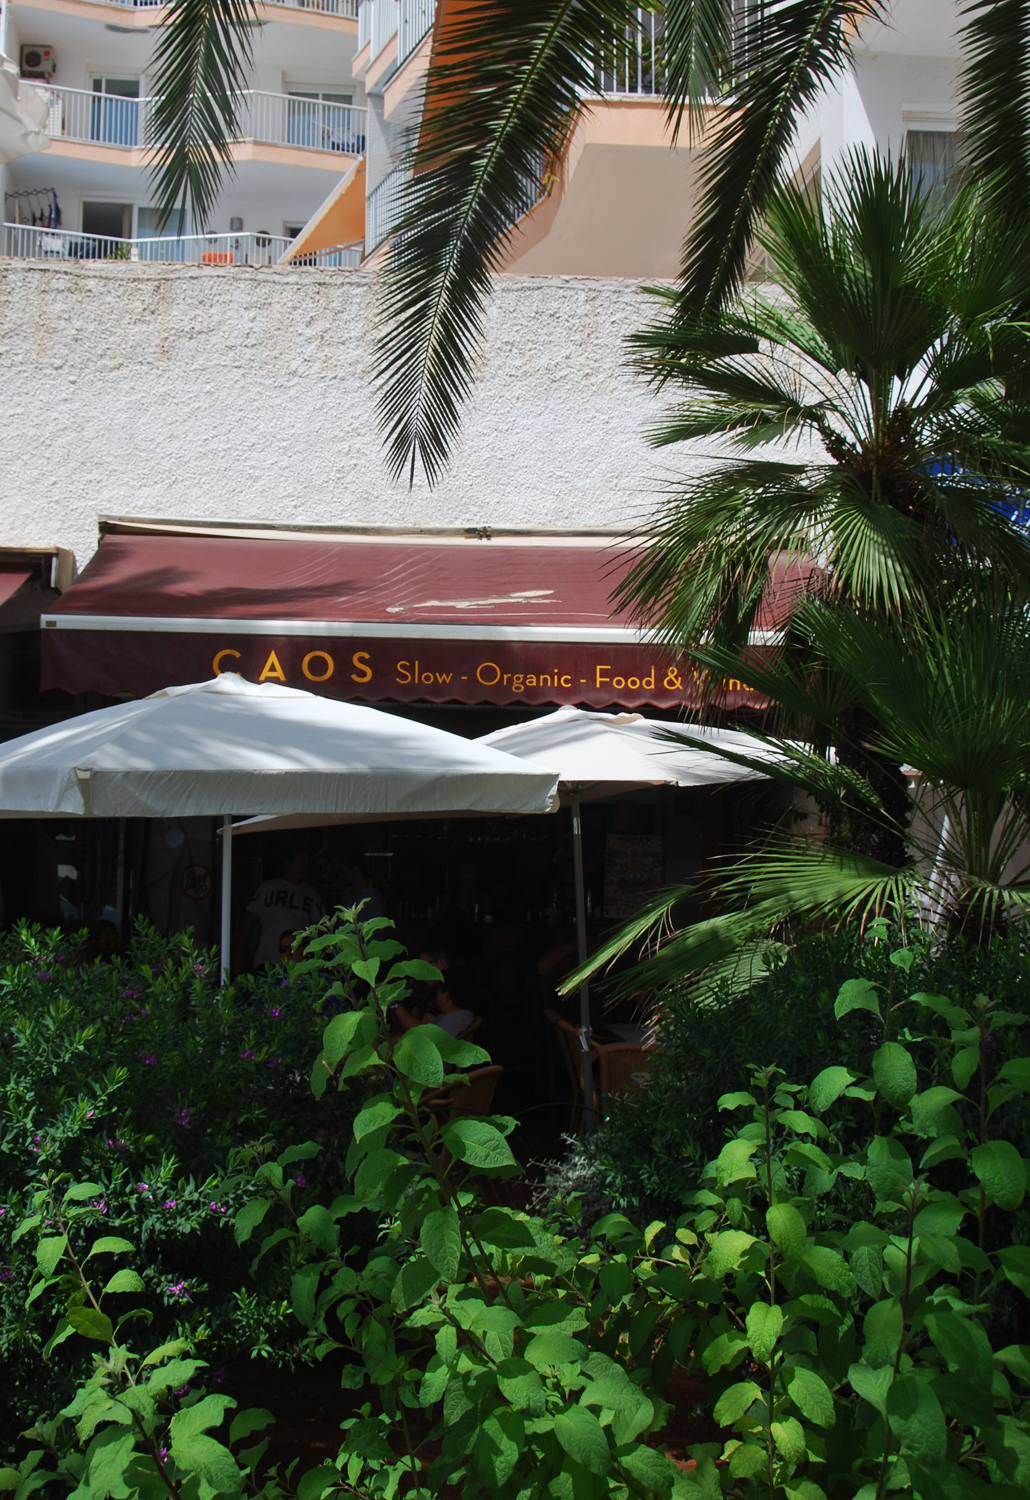 Caos Ibiza slow and organic food santa eularia hotspot review